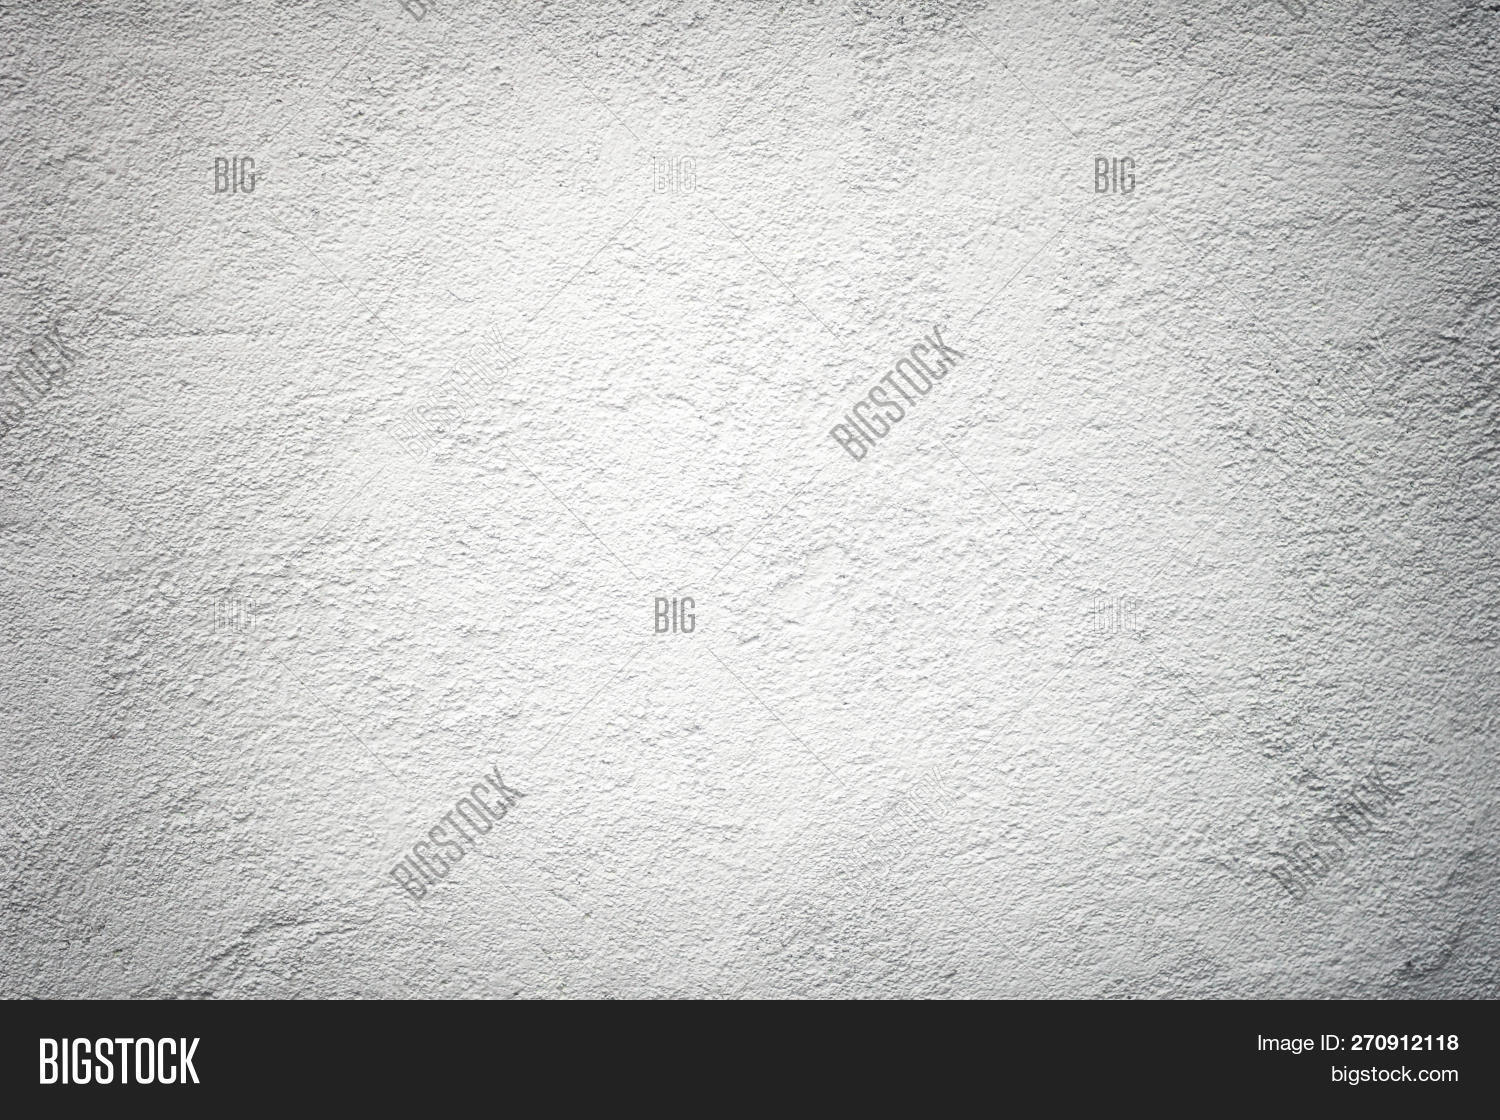 Abstract, Architecture, Background, Background, Concrete, Construction, Design, Dirty, Gray, Gray Ba